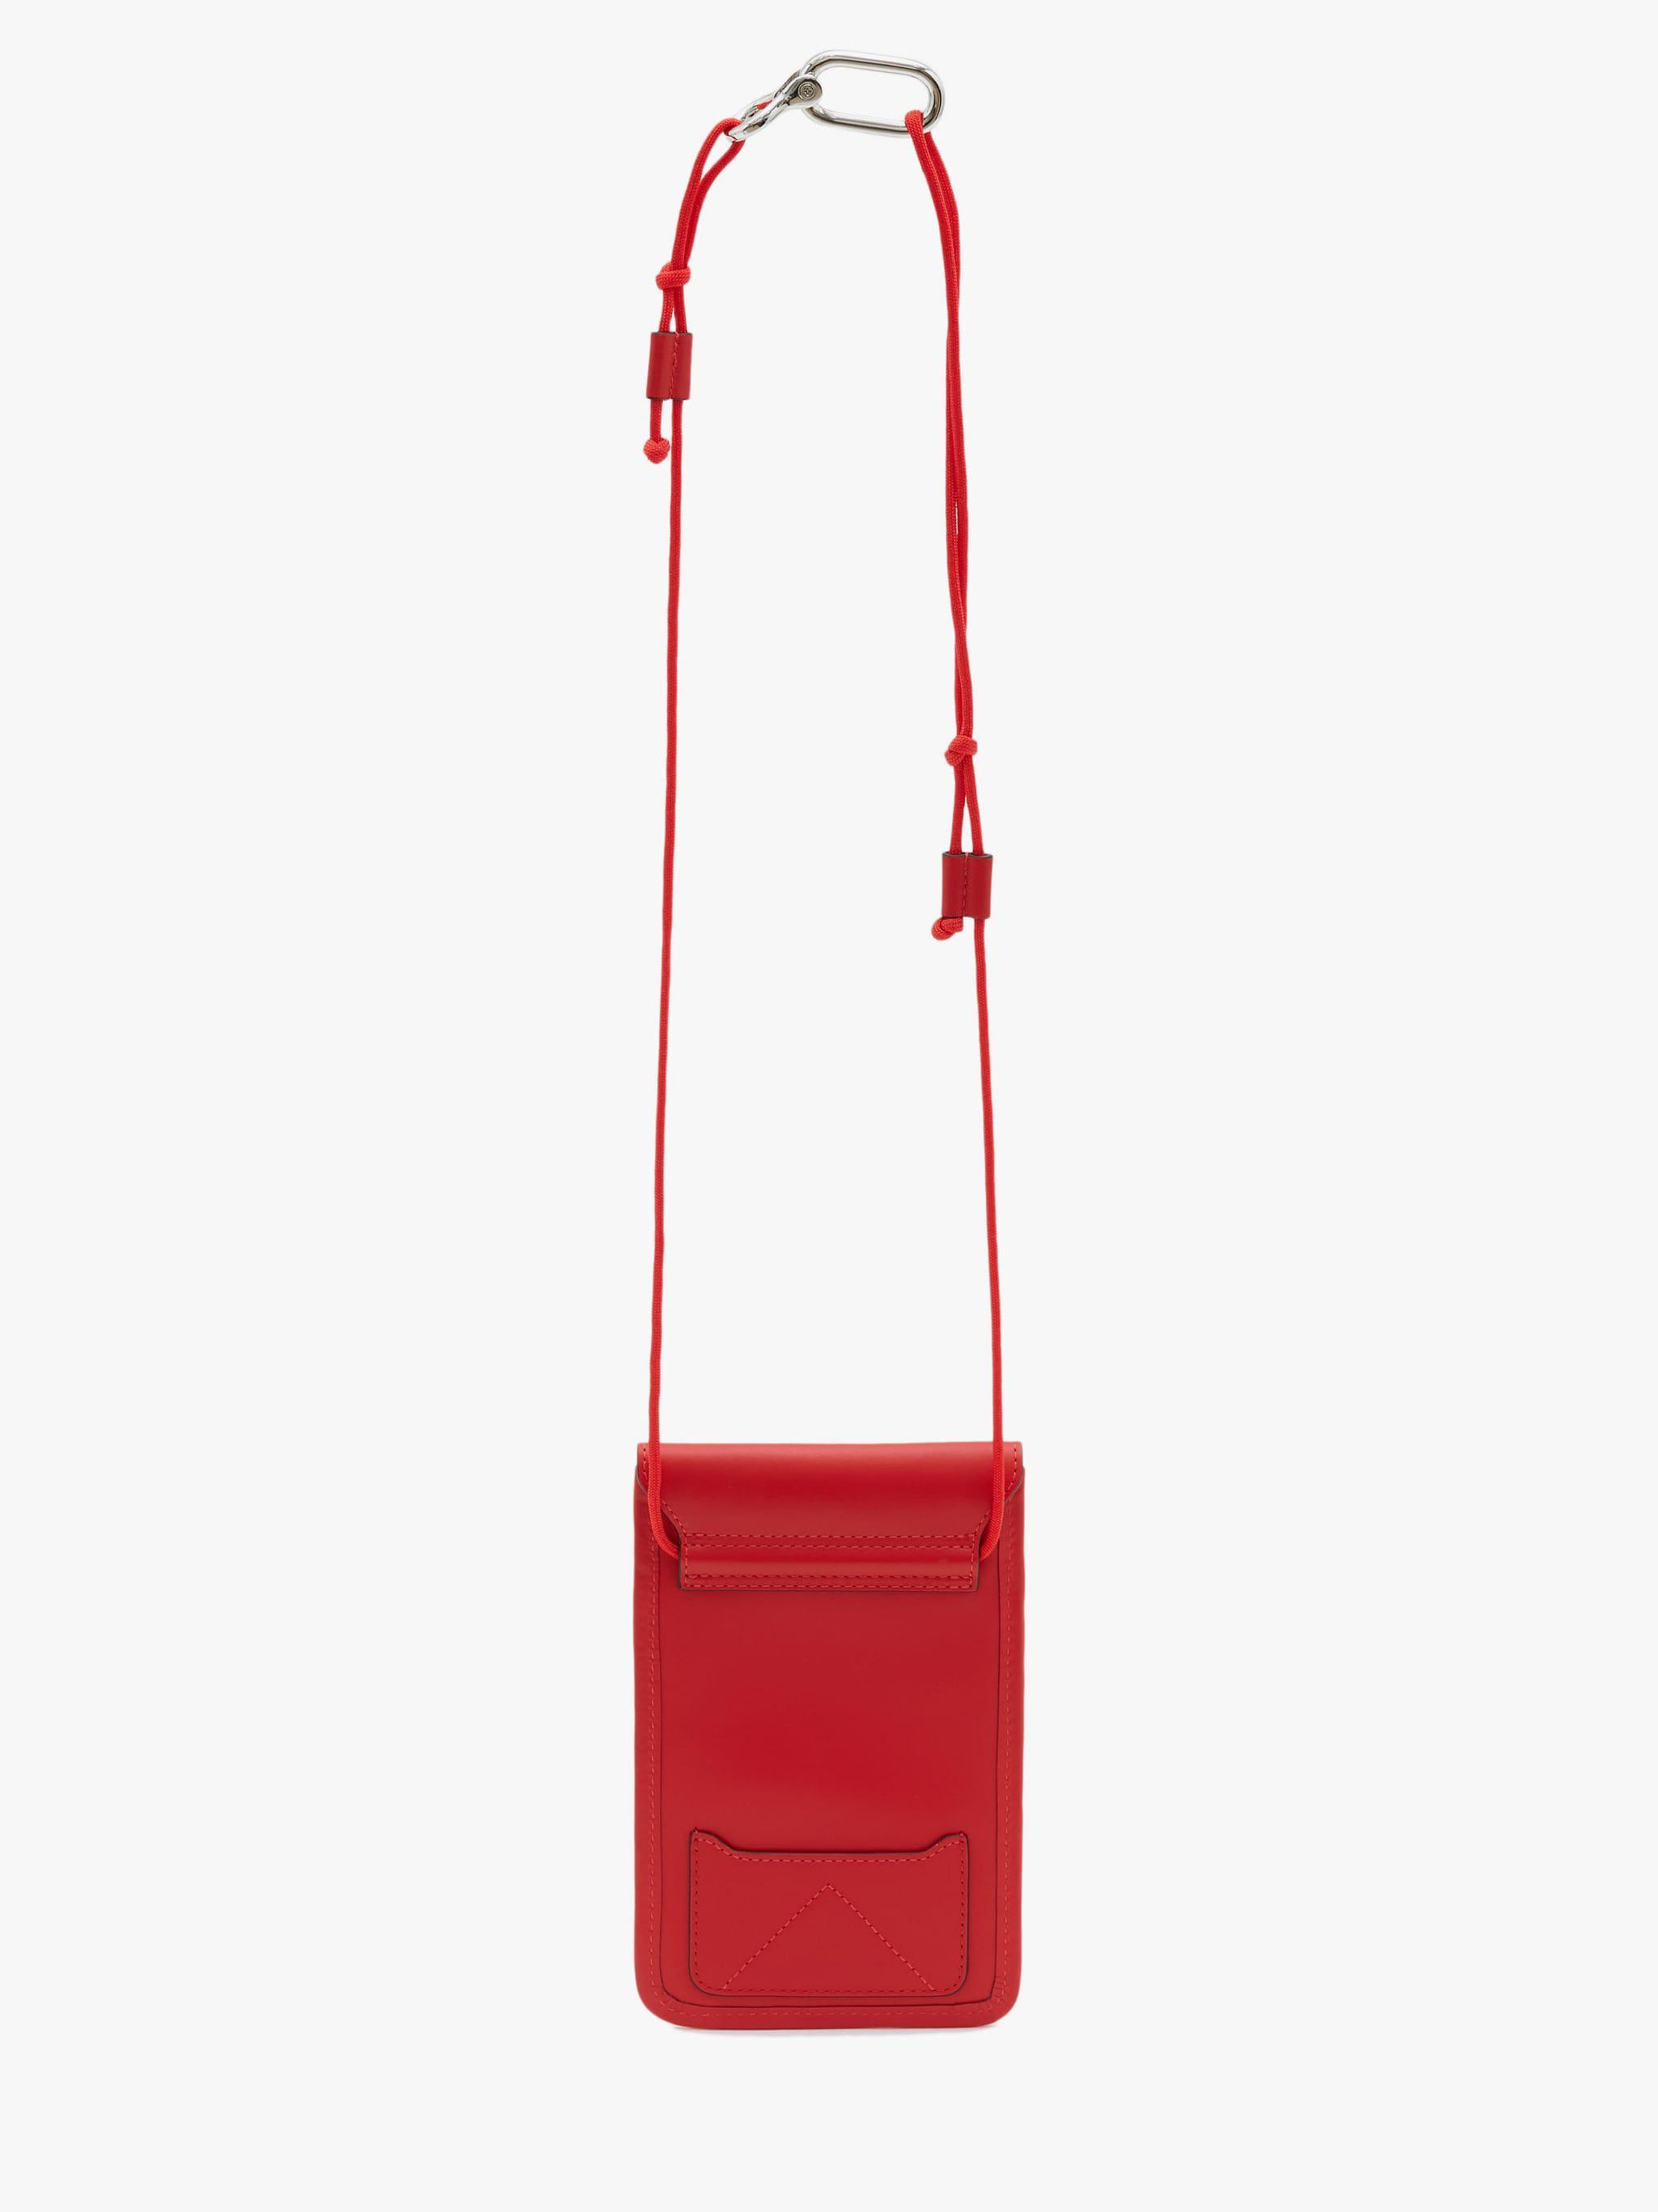 PULLEY POUCH 3